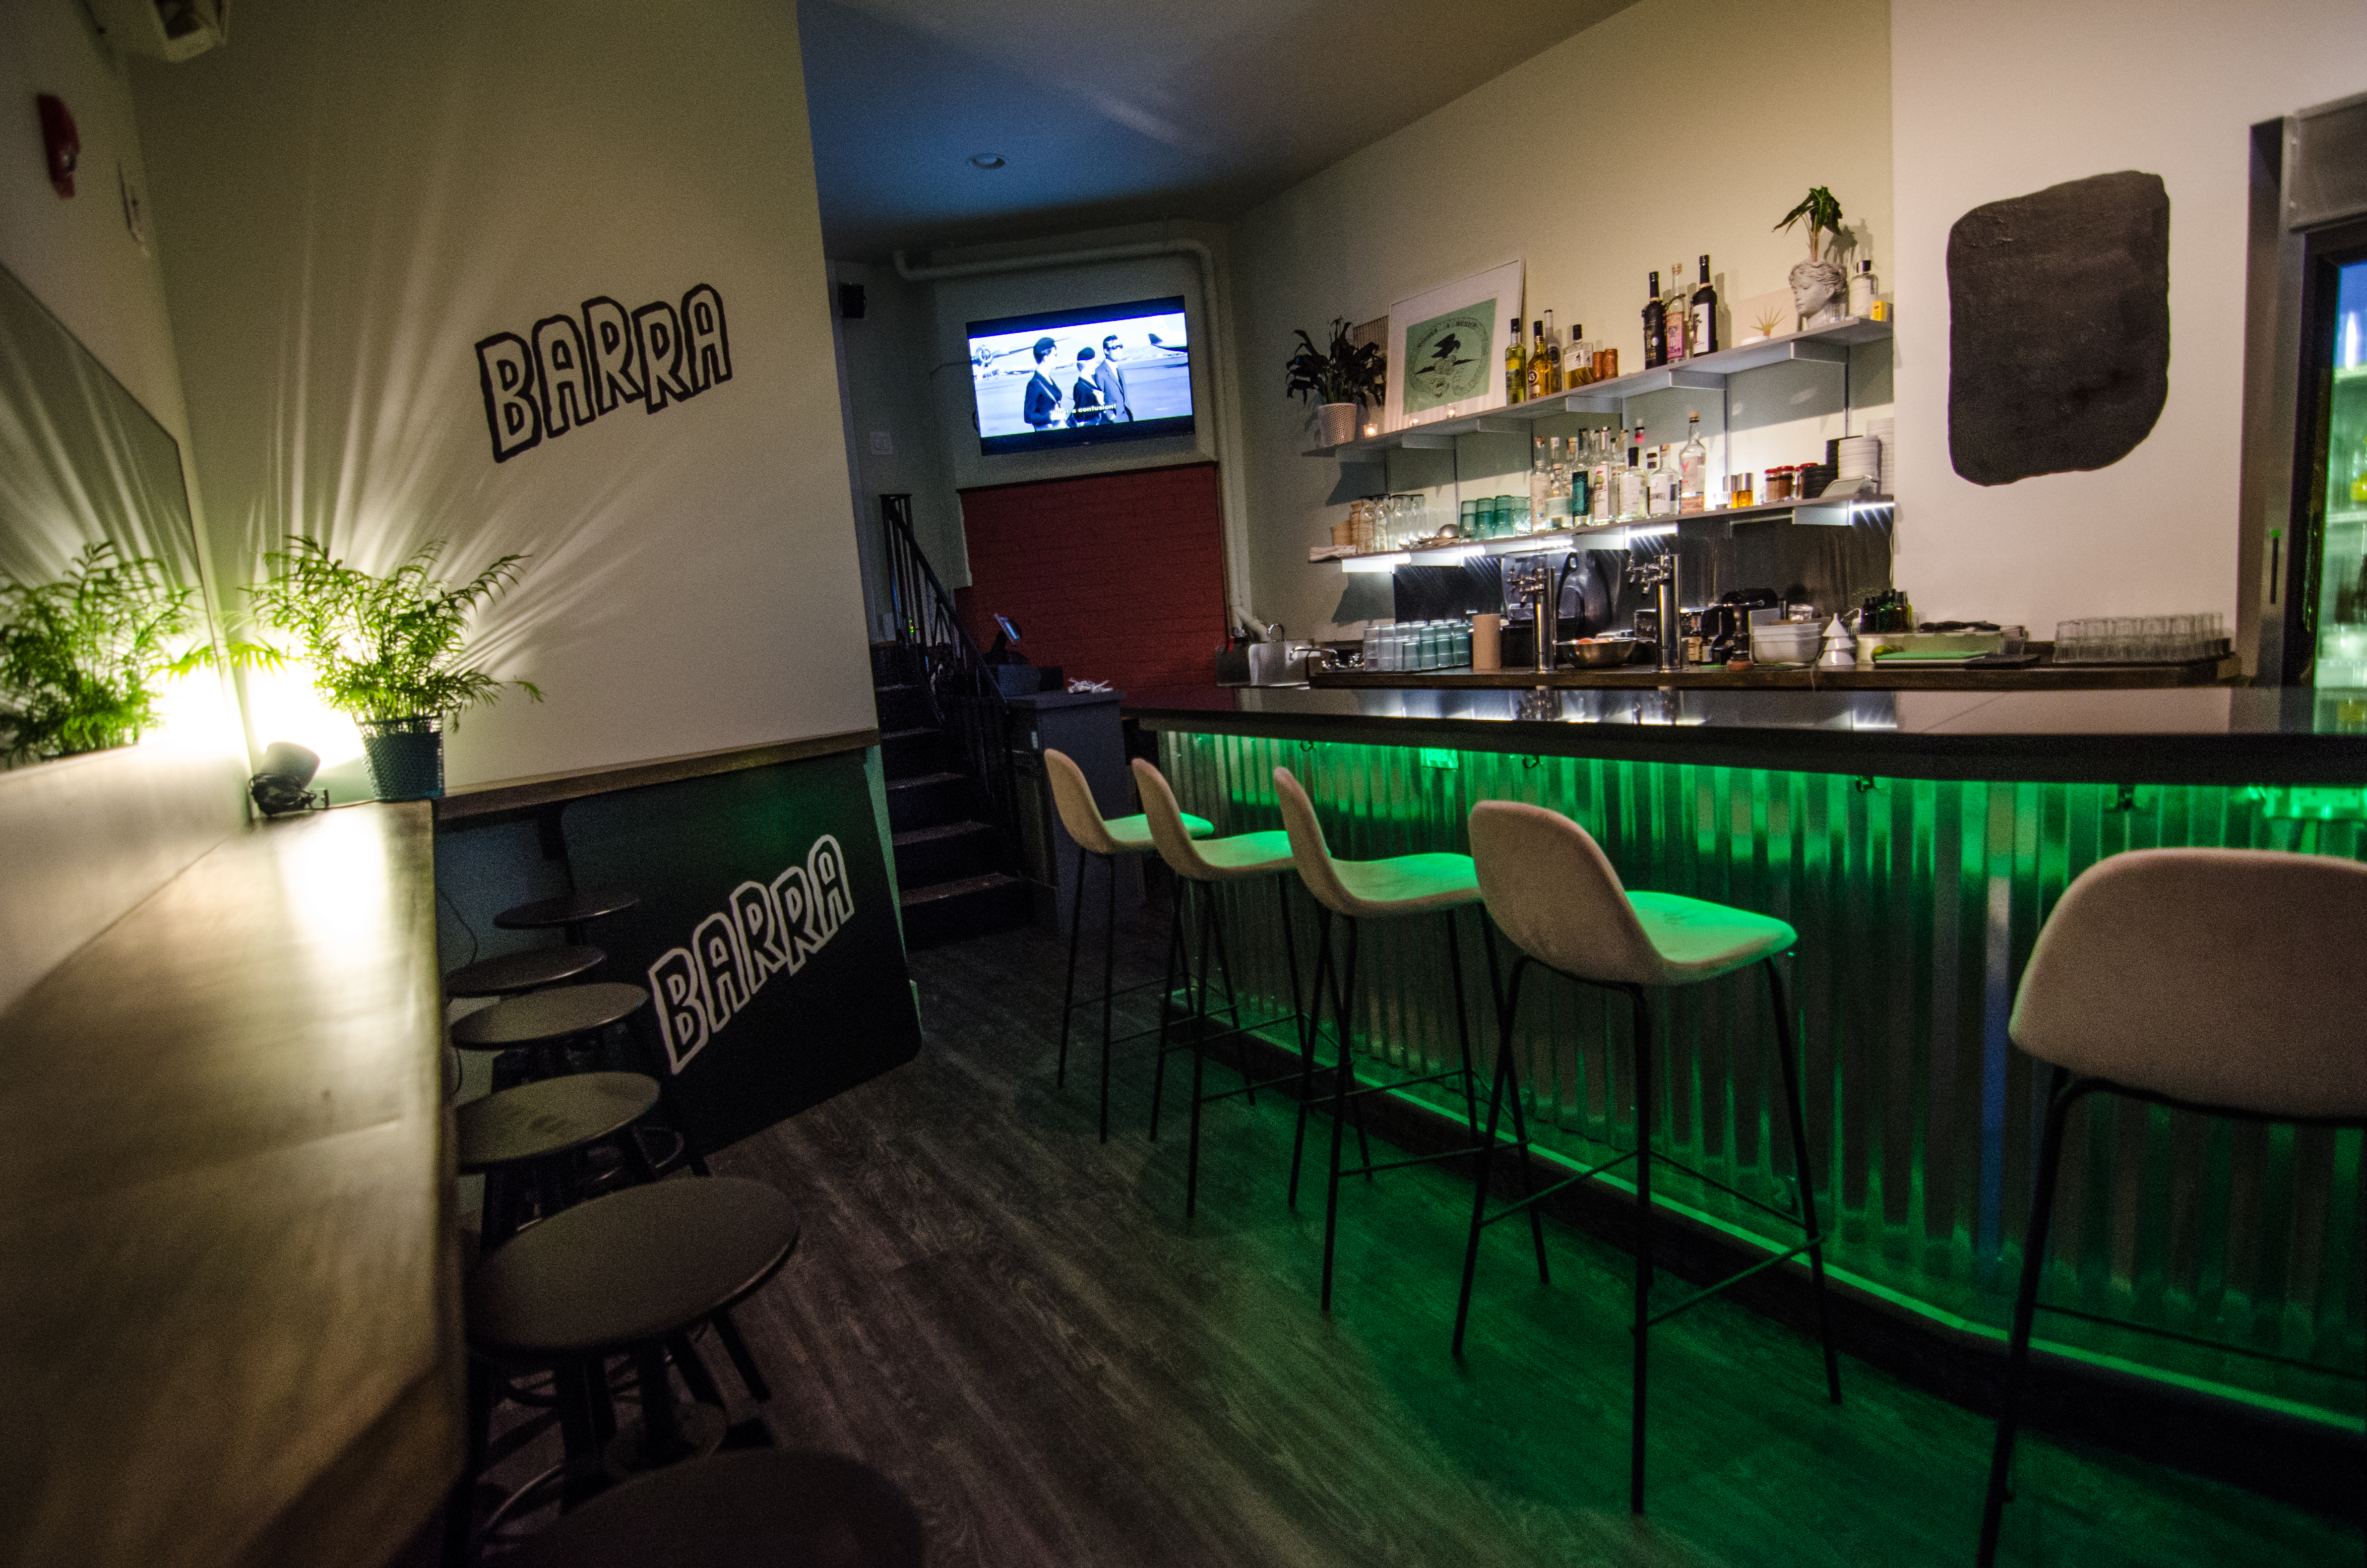 Interior of a small bar, dimly lit with green accents. The bar itself is lined with corrugated galvanized aluminum. The bar's name, Barra, is hand-painted in thick black paint on the wall, and a spotlight casts lines through the leaves of a potted plant.